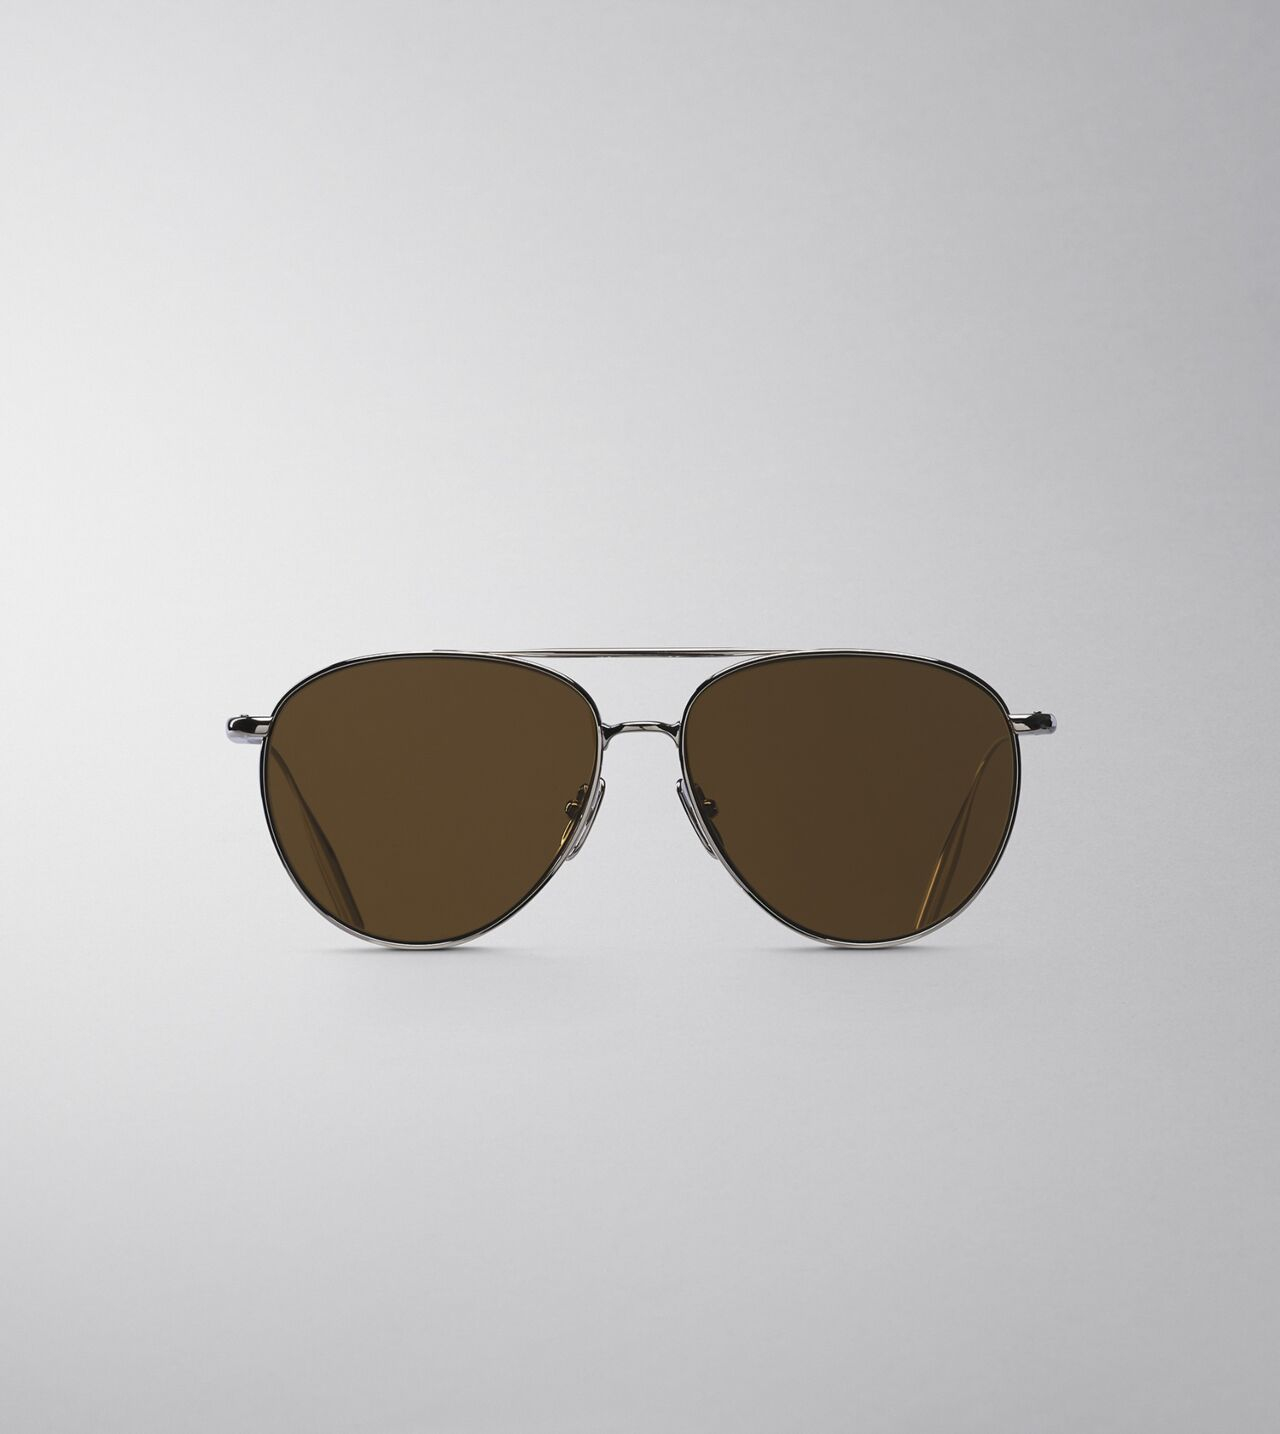 Picture of Byredo The Certified Pilot in Palladium brown